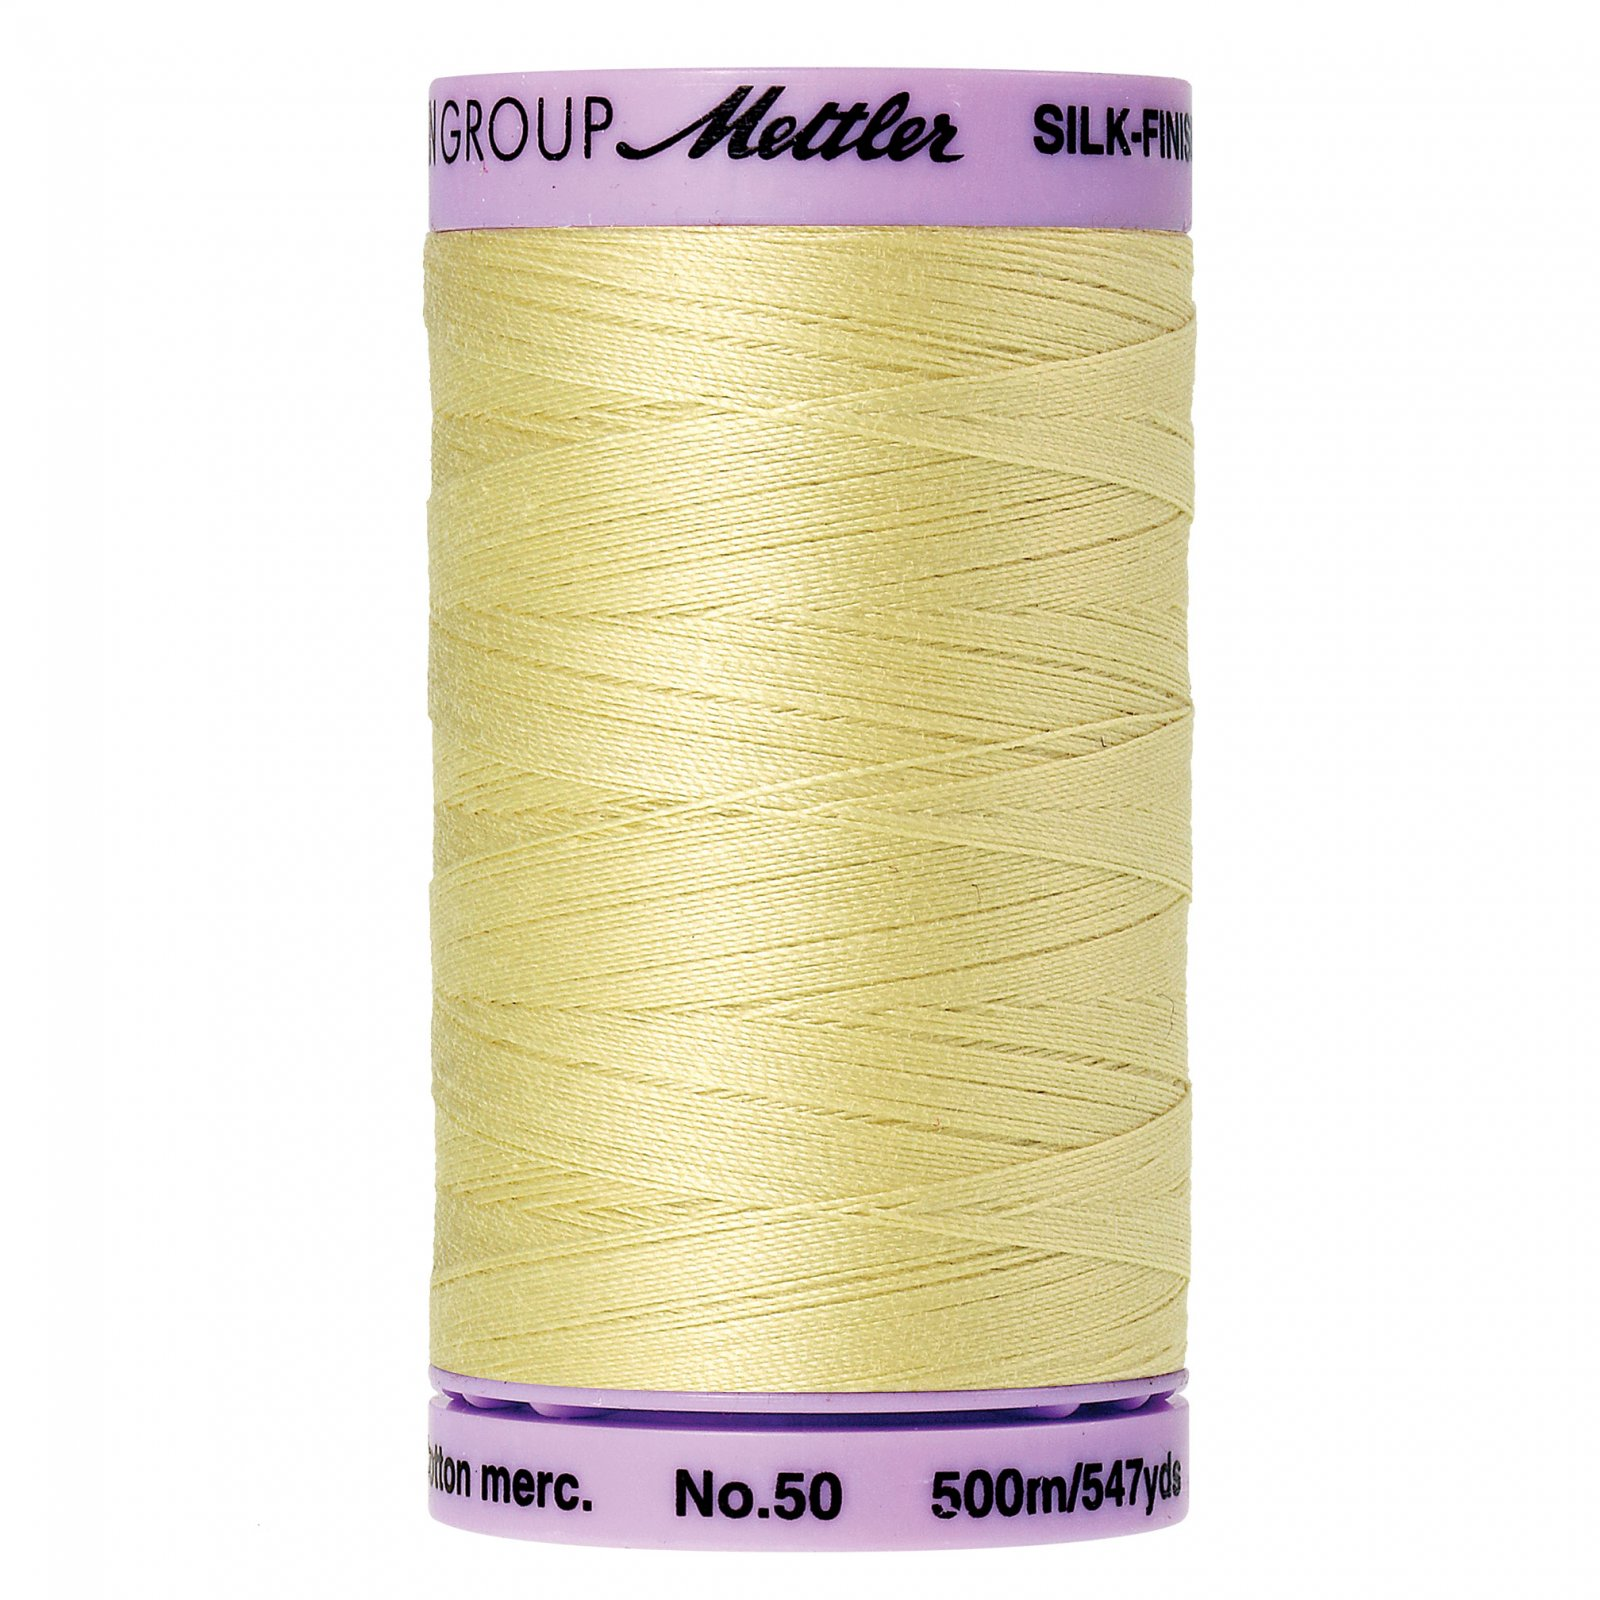 Mettler Silk Finish Cotton - 547yds - 1412 Lemon Frost